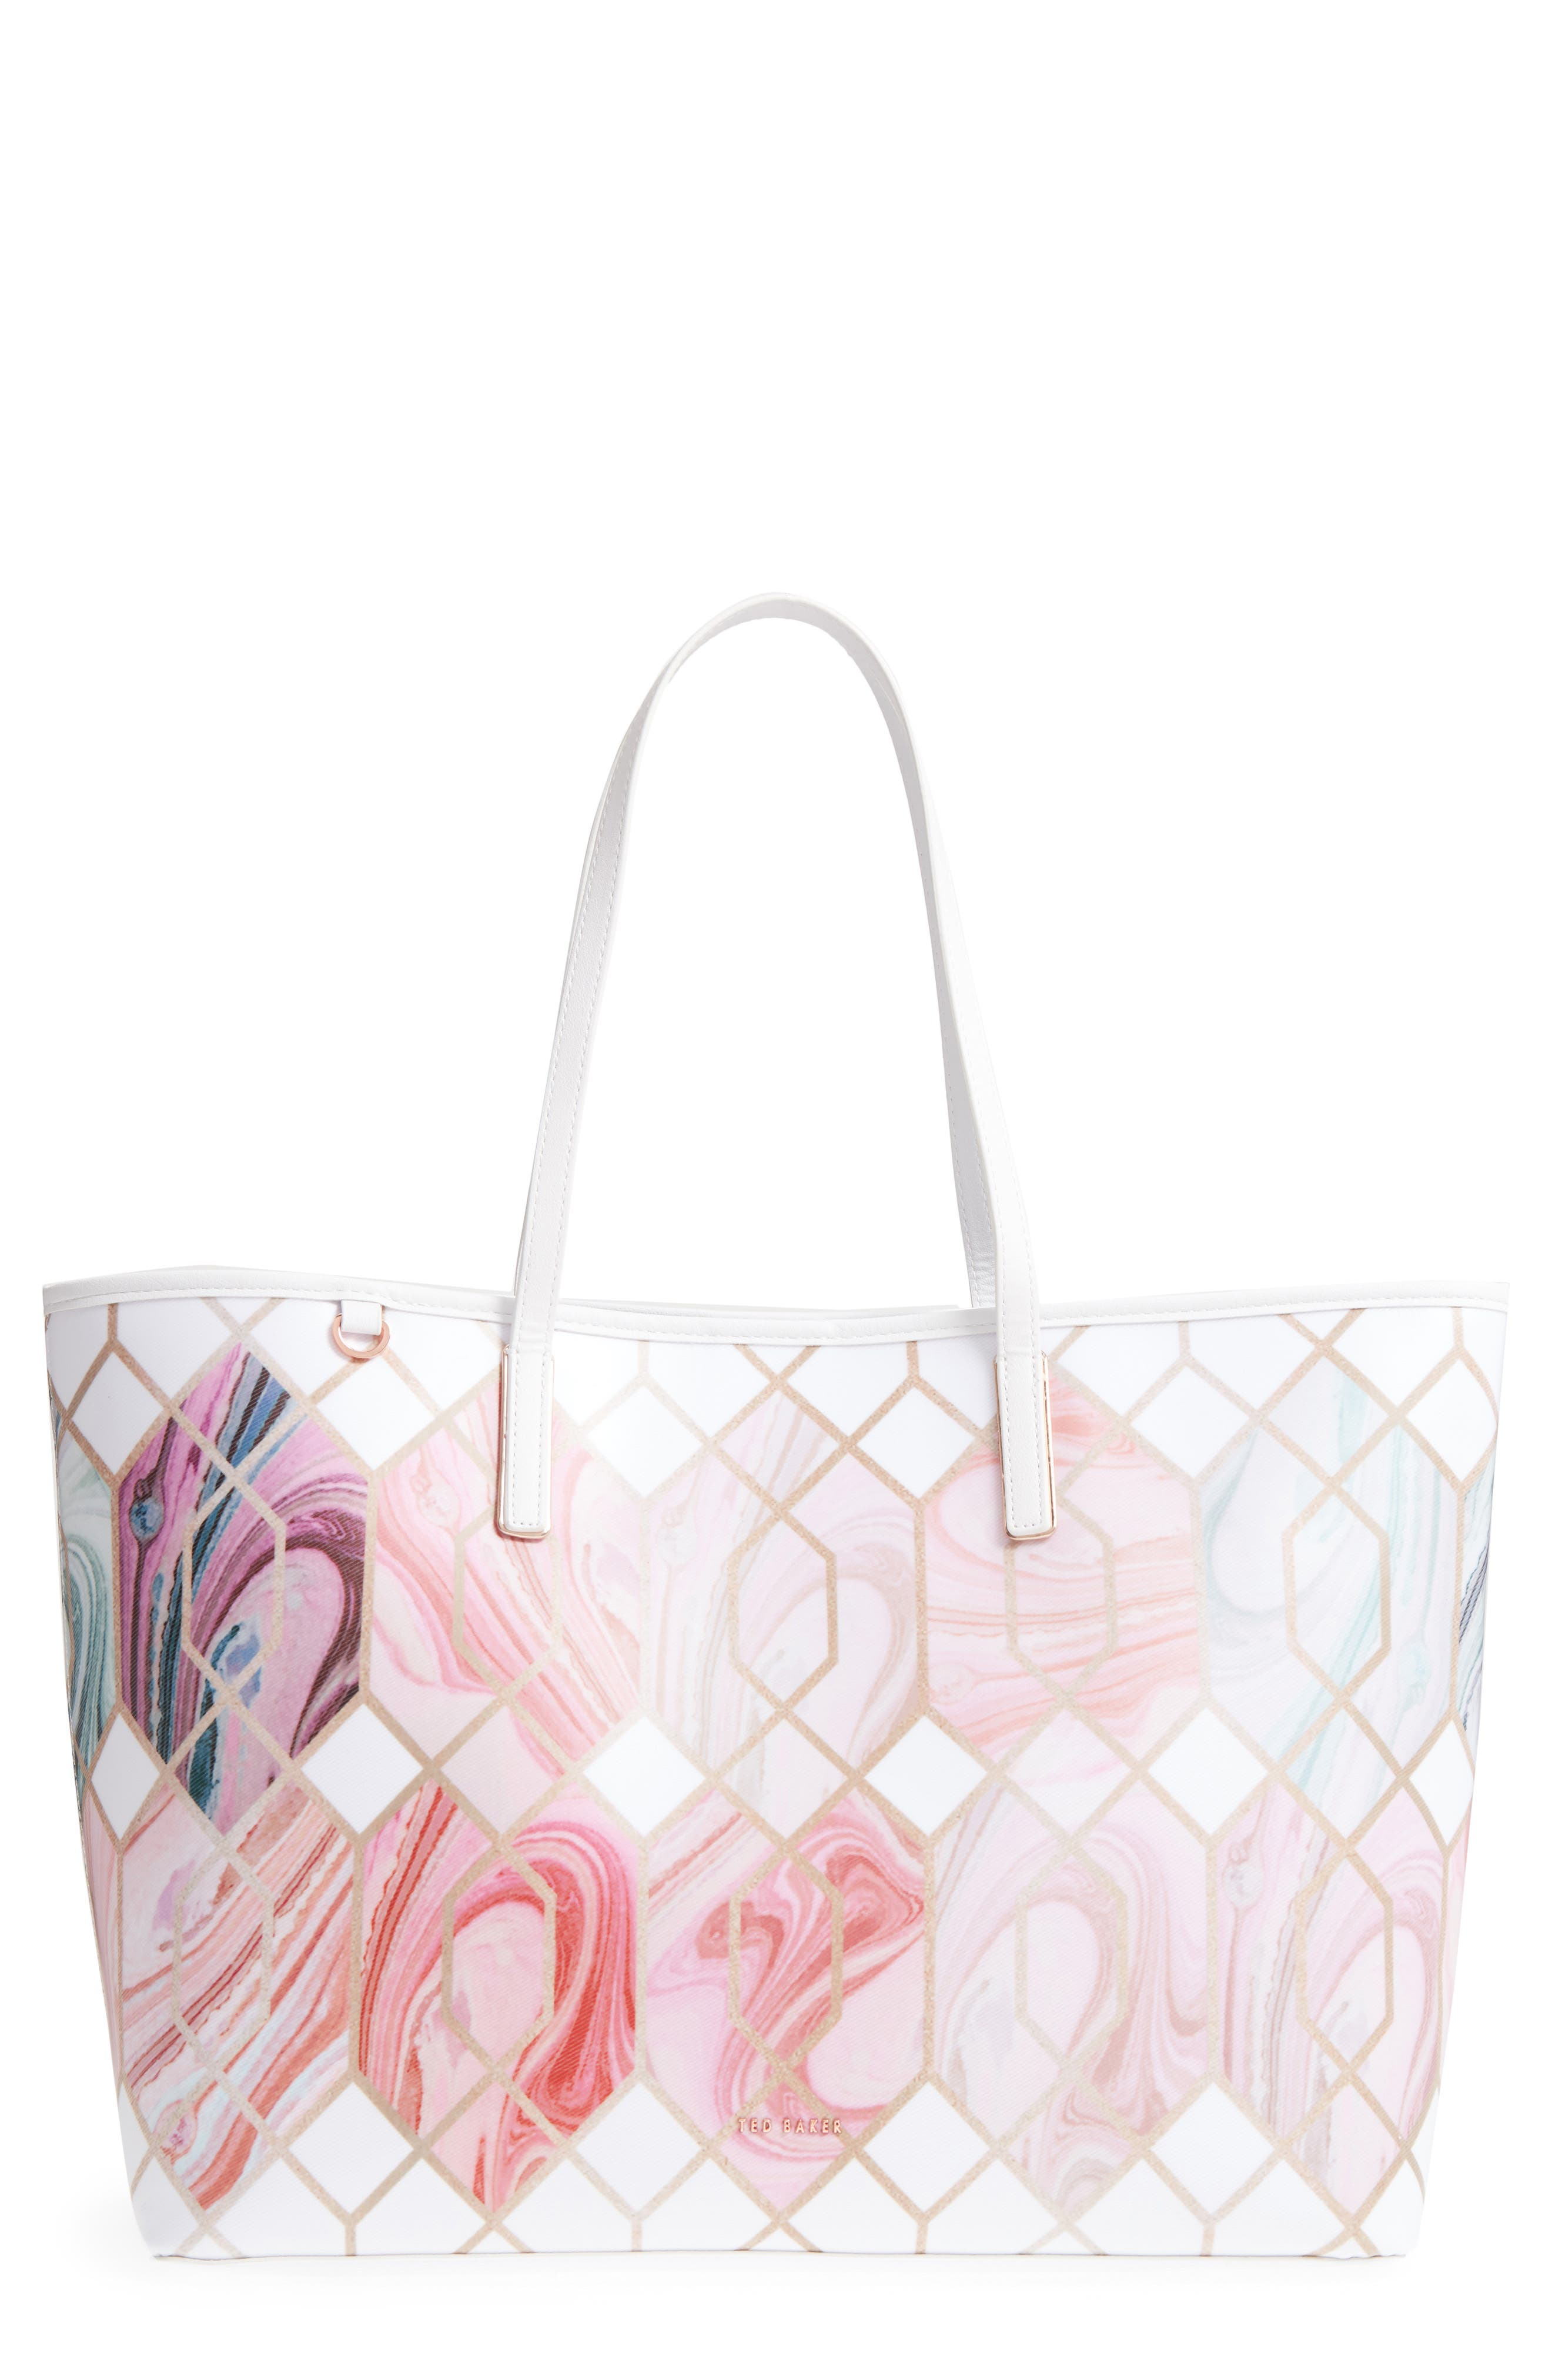 Aamy Sea of Clouds Bloom Canvas Tote,                         Main,                         color, White